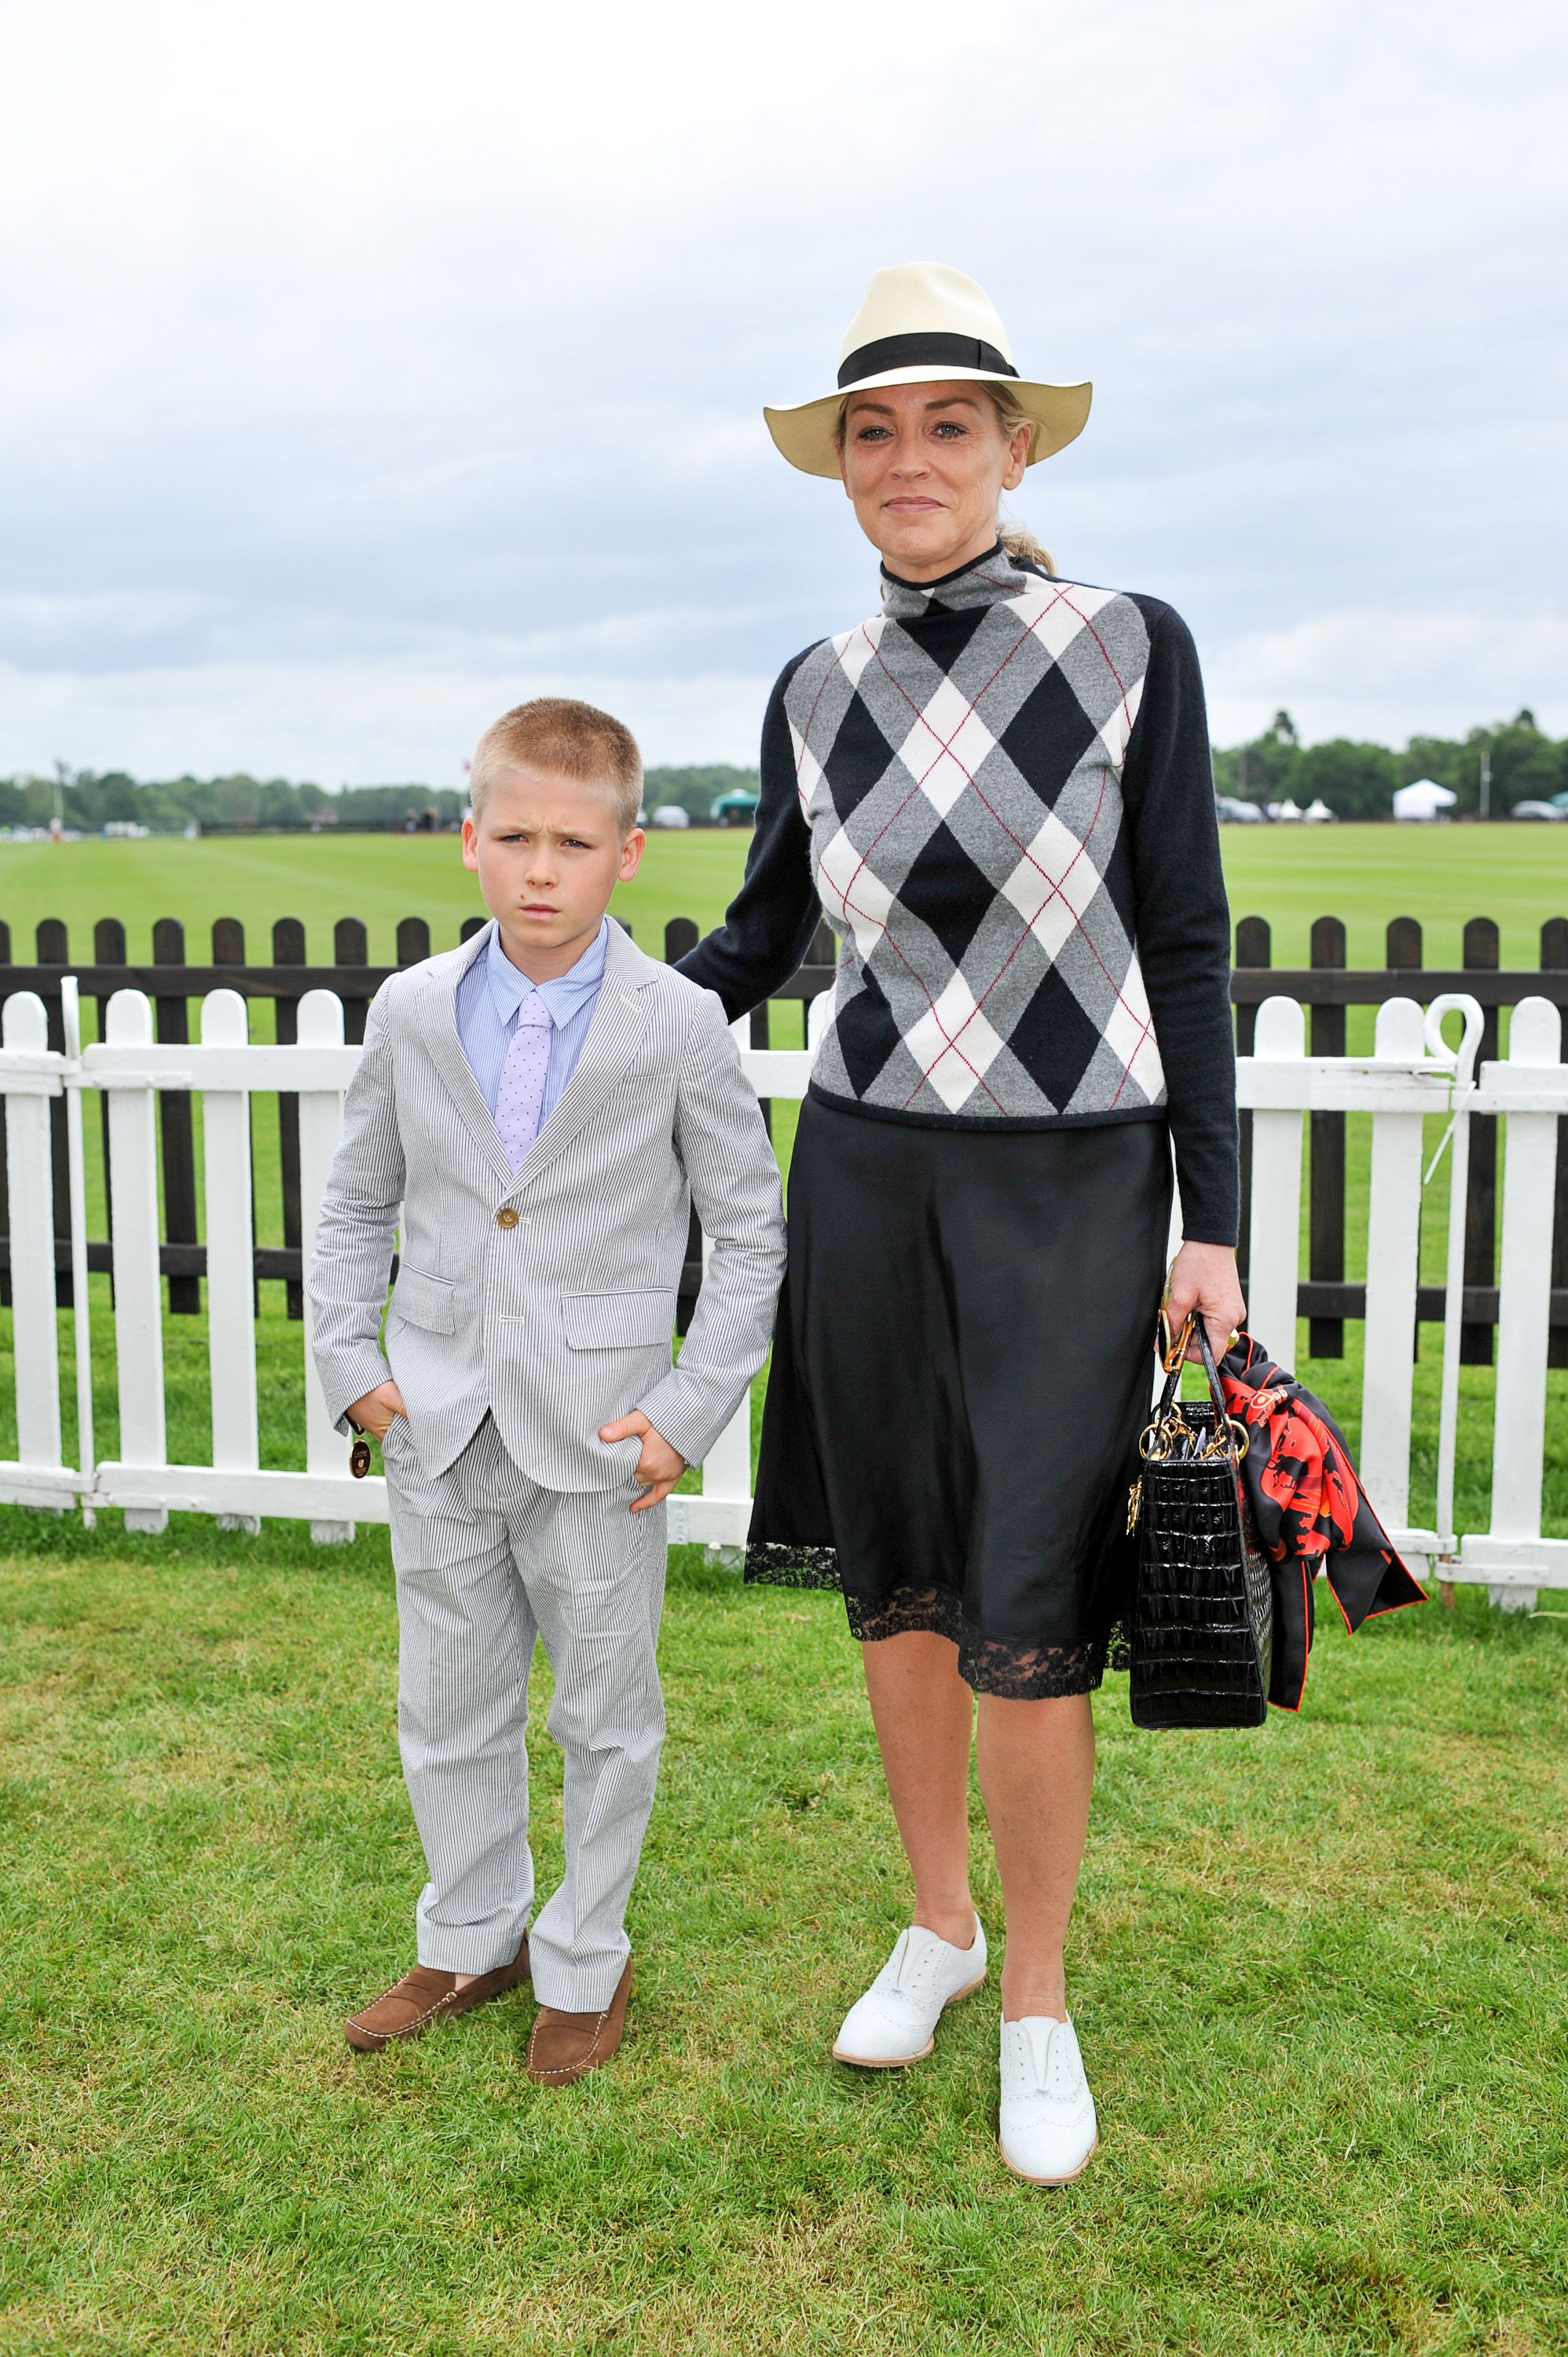 Sharon Stone and son Roan at the Cartier Queen's Cup final in 2013 in Egham, England | Source: Getty Images